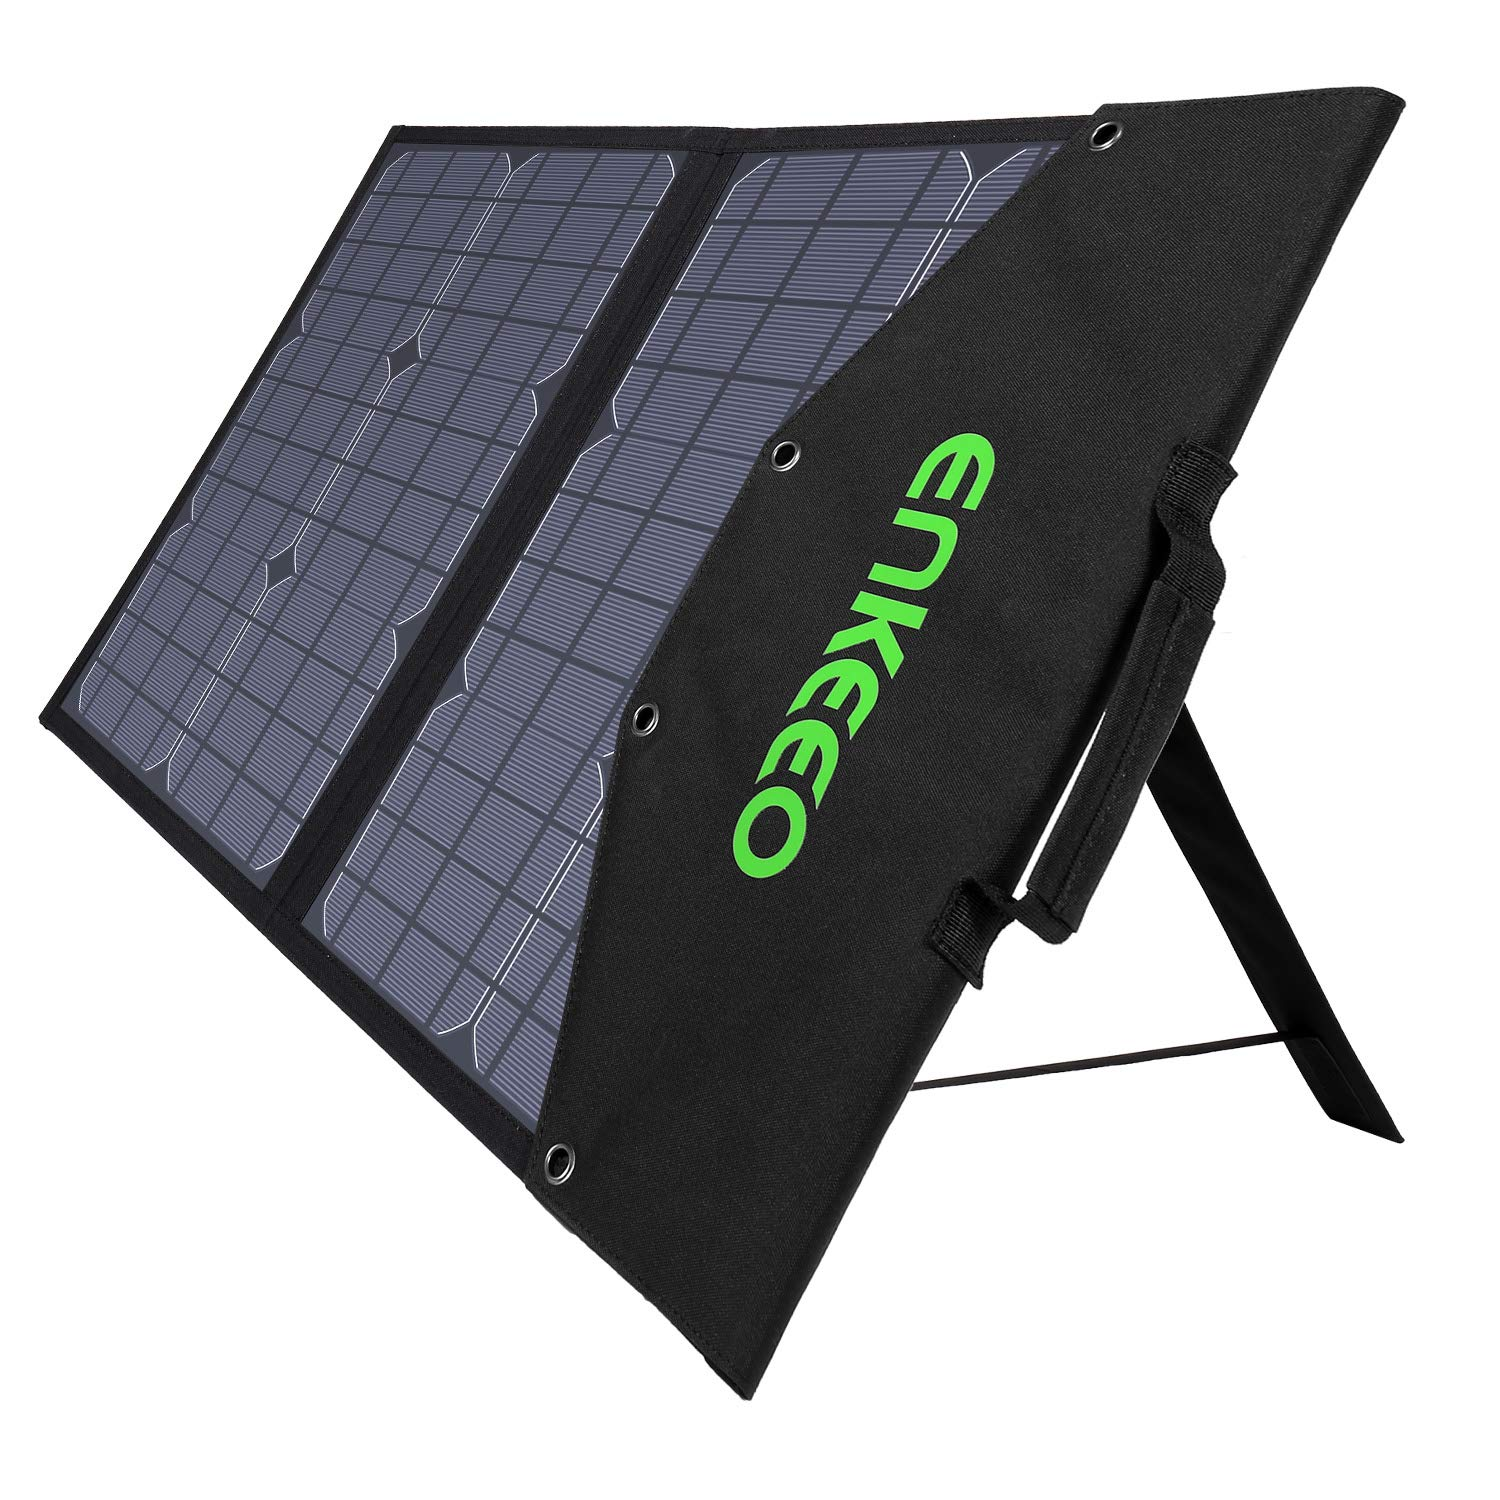 ENKEEO 50W Solar Charger, Foldable Solar Panel with MPPT Controller and TIR-C, DC, USB QC 3.0 and 2.0 Output Ports, Multiple Connection Cables for Smartphones, Laptops, Car Battery, Power Stations by ENKEEO